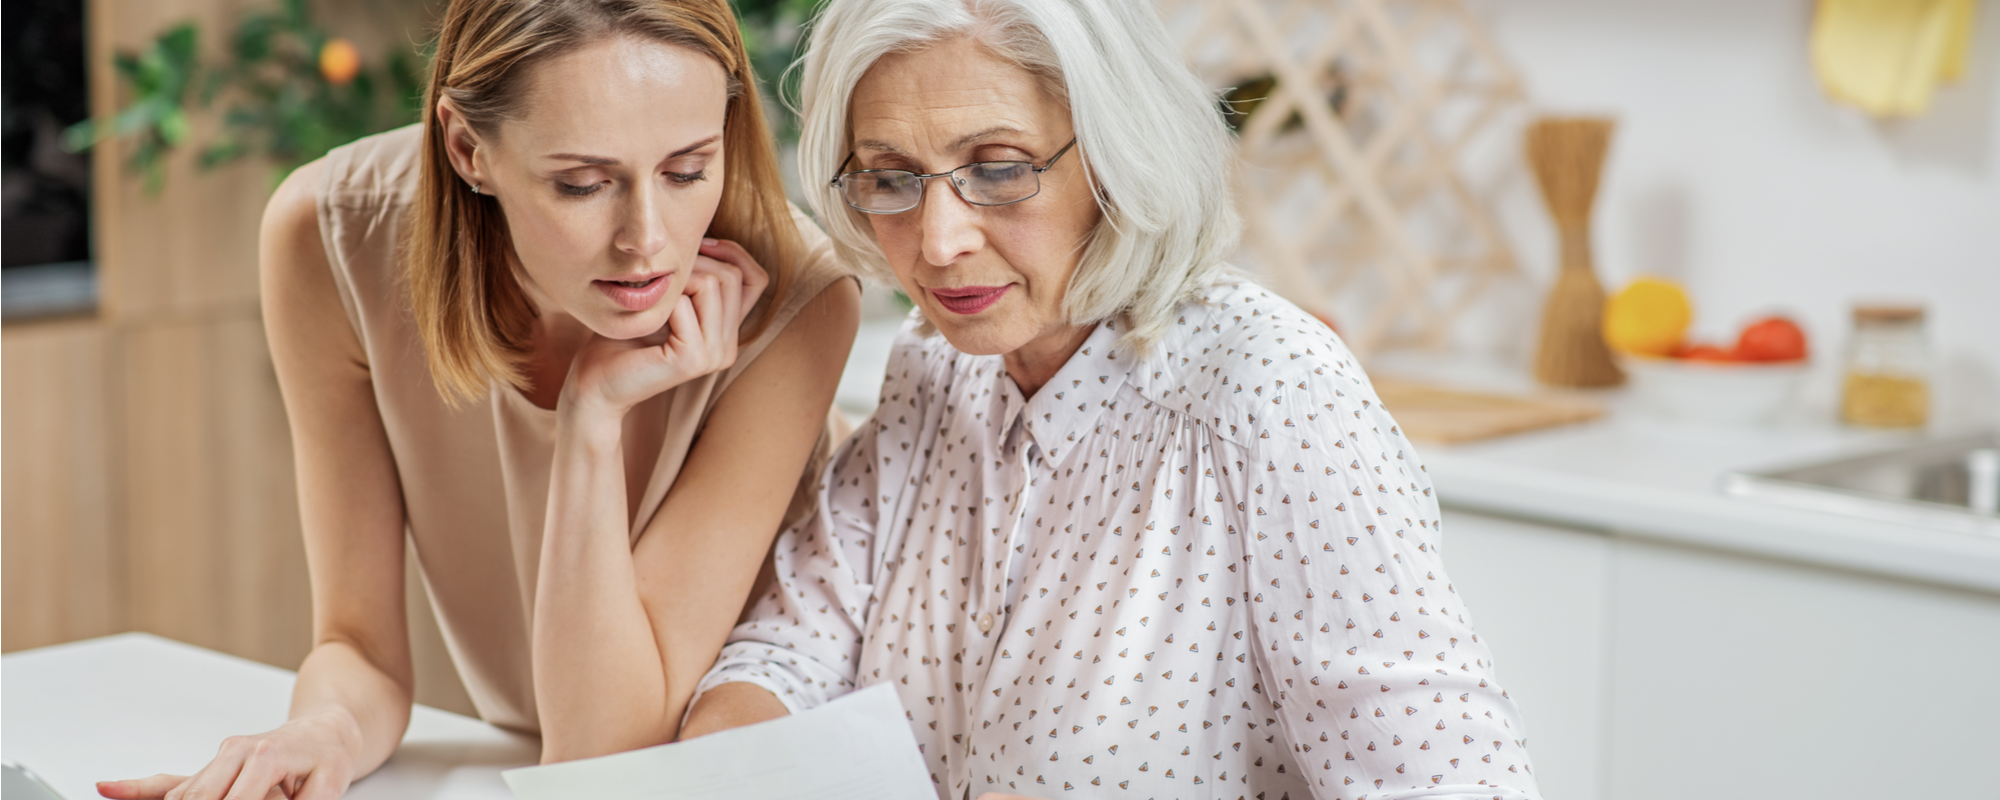 When is the Right Time to Discuss Finances with Your Elderly Parents